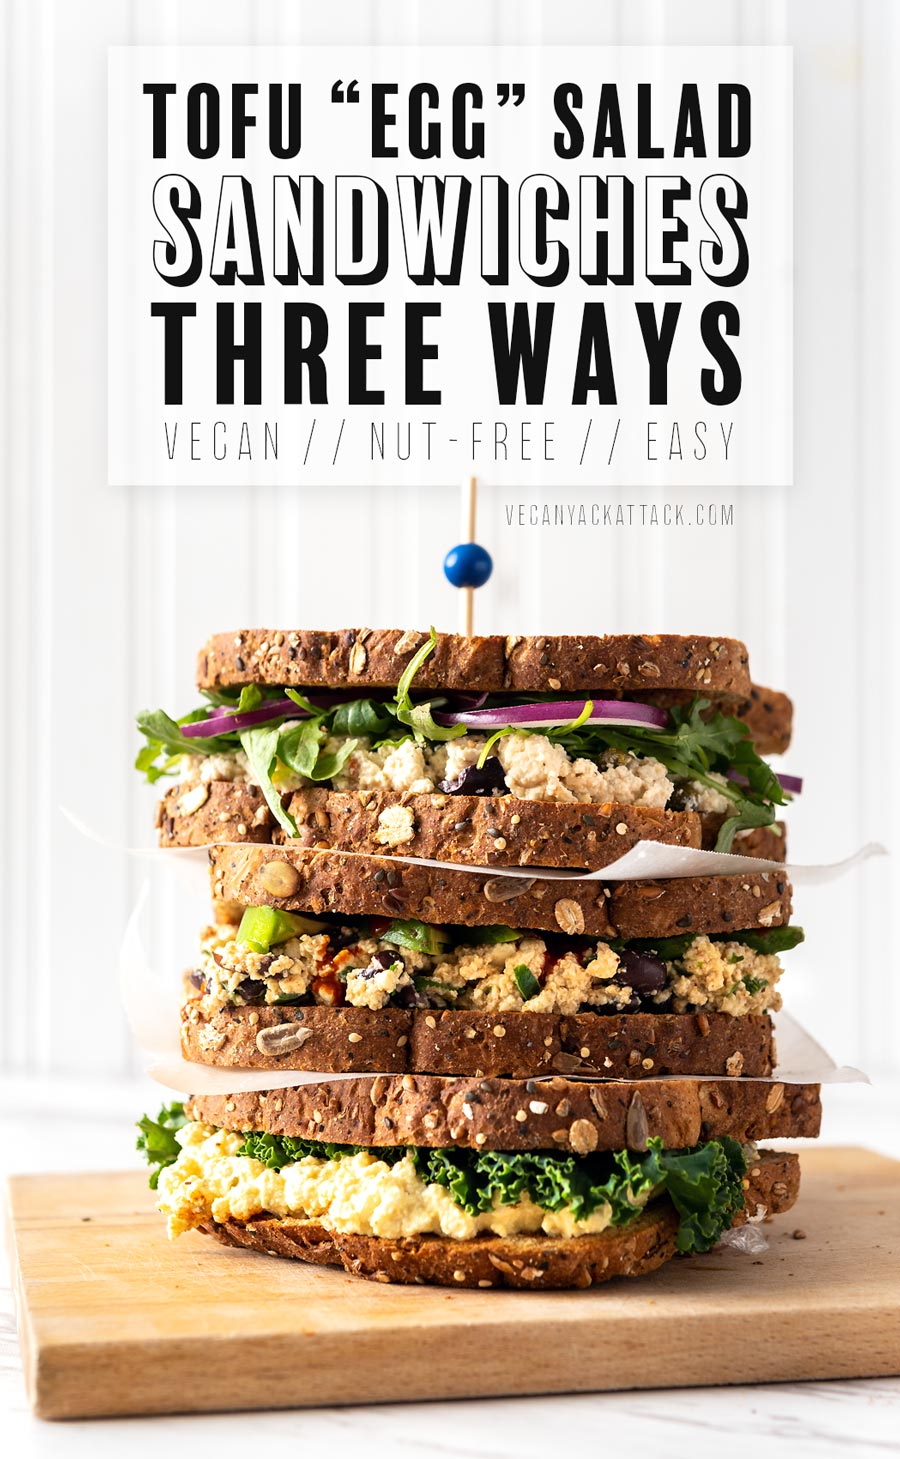 Protein-rich, easy, and flavorful, everyone needs a classic tofu egg salad sandwich in their lives! Here are 3 ways to make the perfect, quick lunch. #vegan #veganyackattack